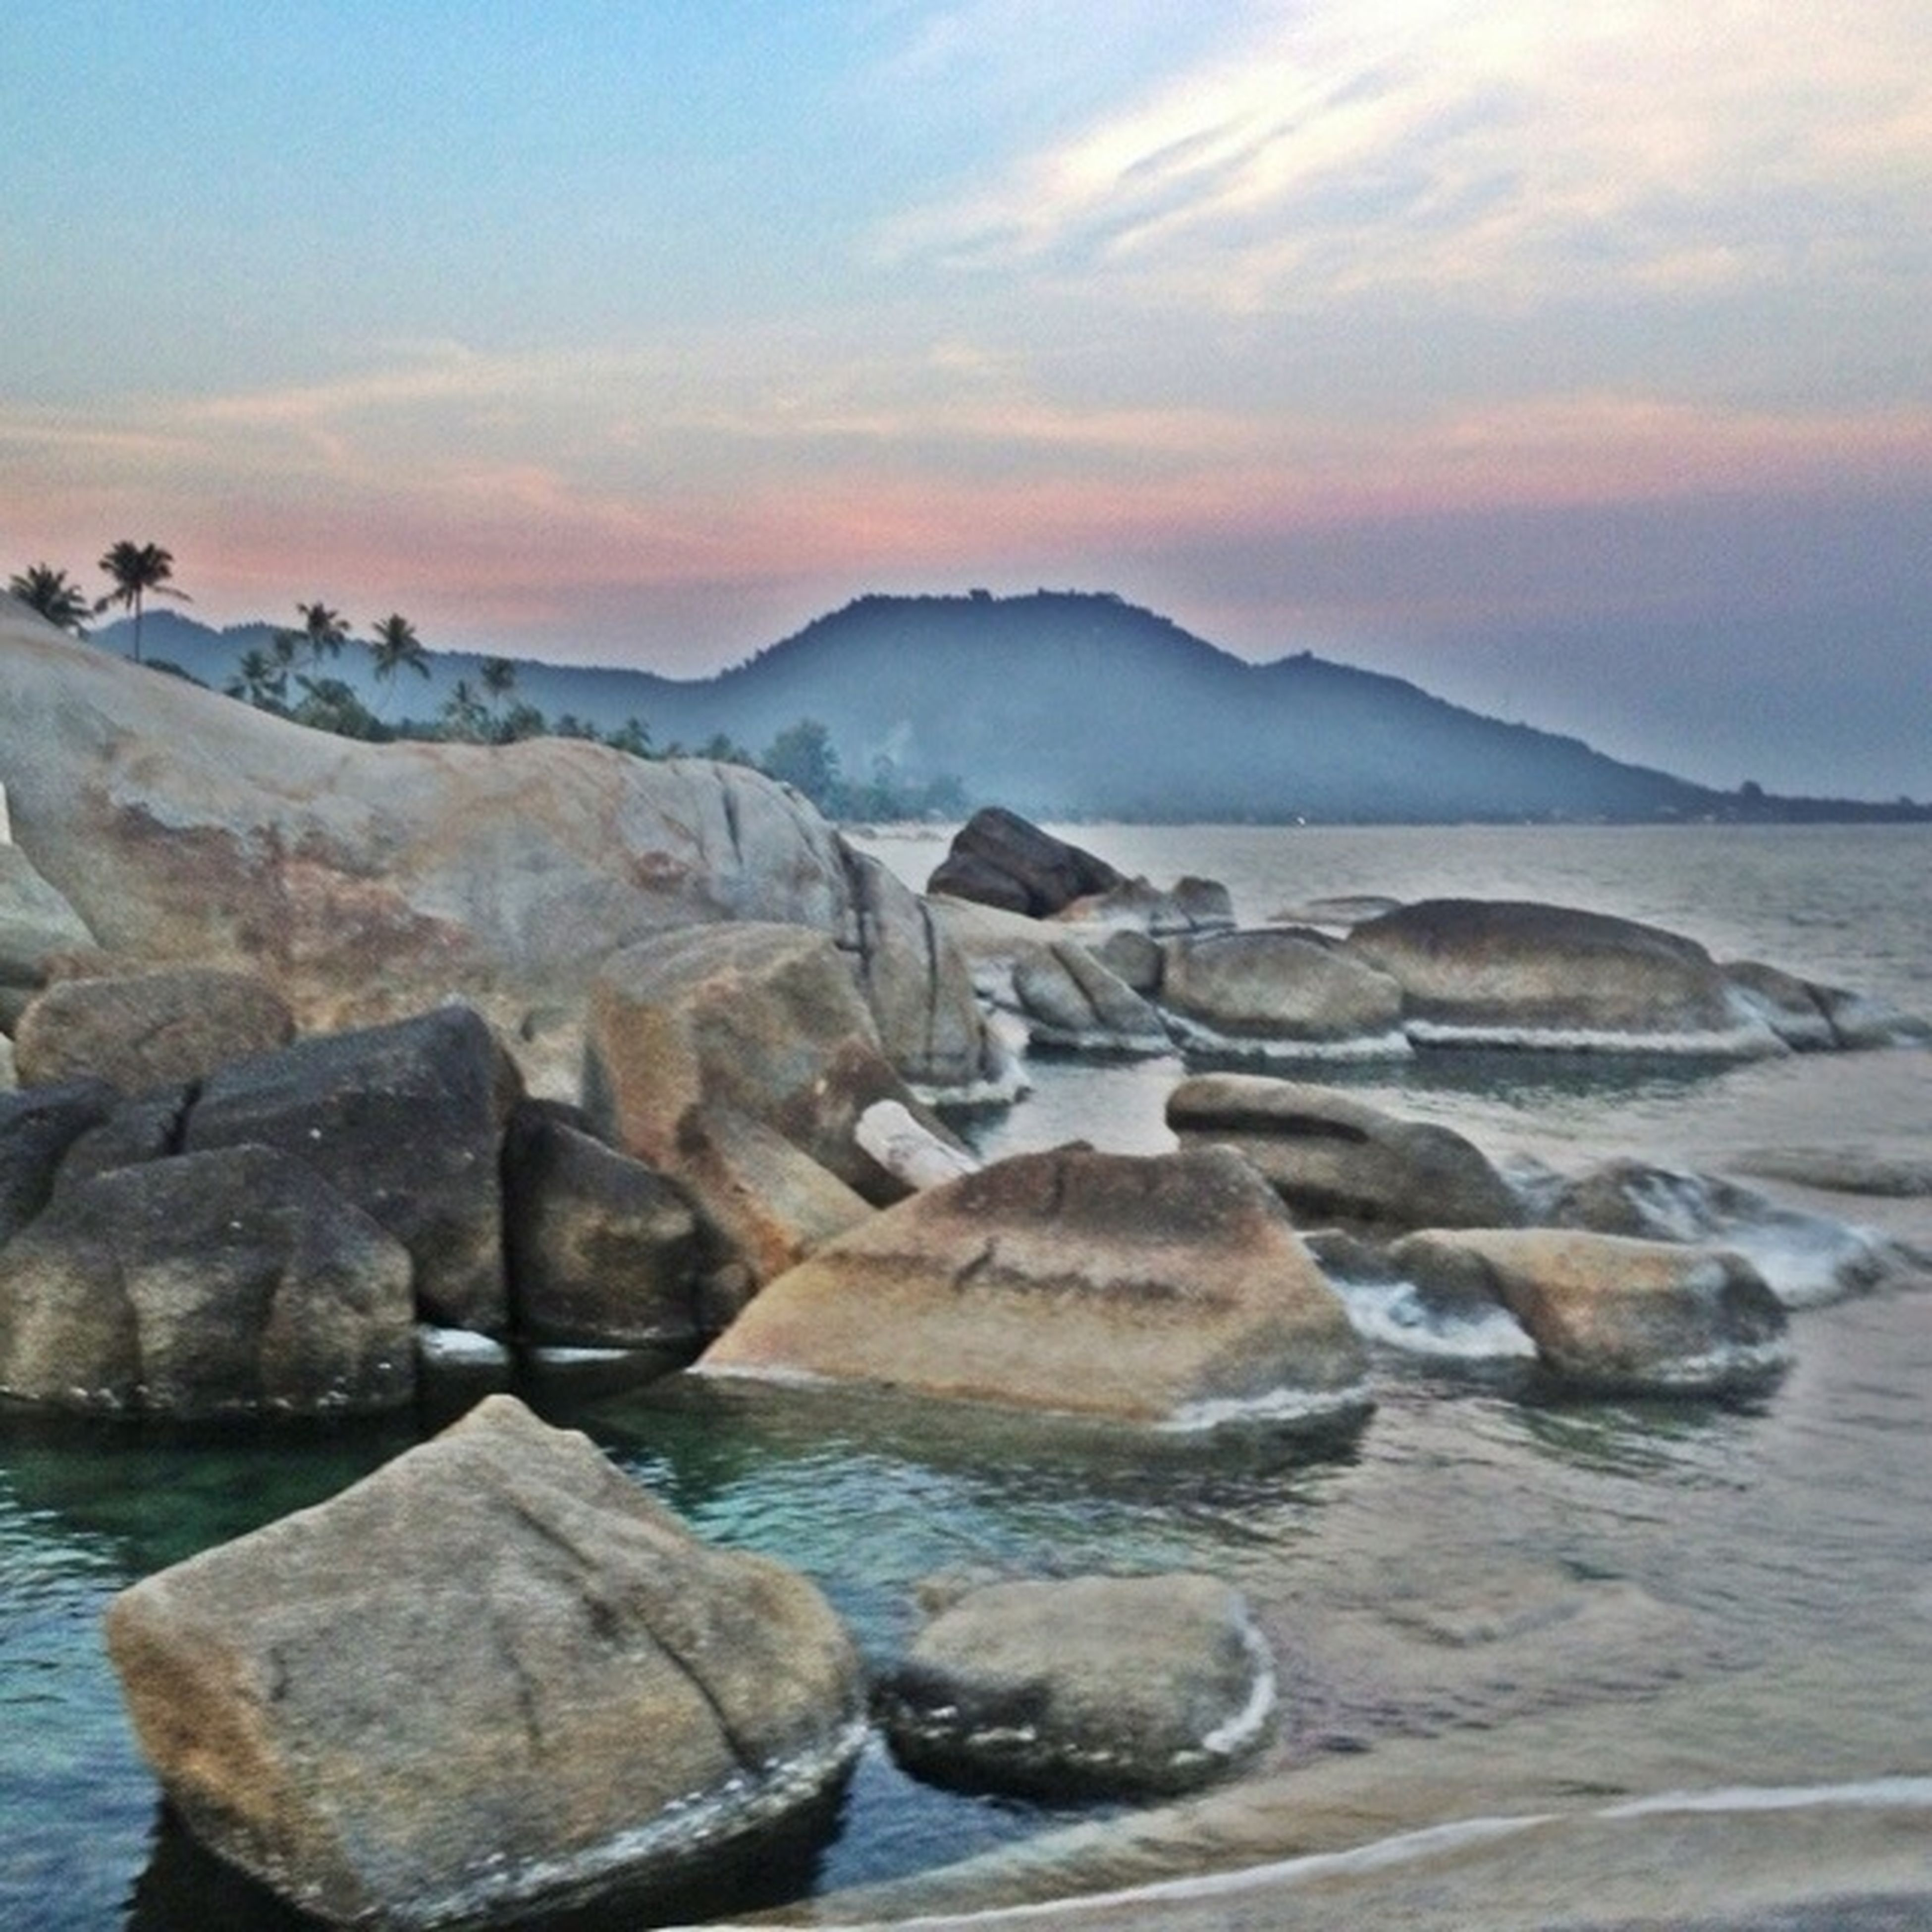 water, scenics, tranquil scene, tranquility, rock - object, beauty in nature, sky, nature, sunset, sea, waterfront, mountain, rock formation, idyllic, rock, cloud - sky, lake, non-urban scene, reflection, rippled